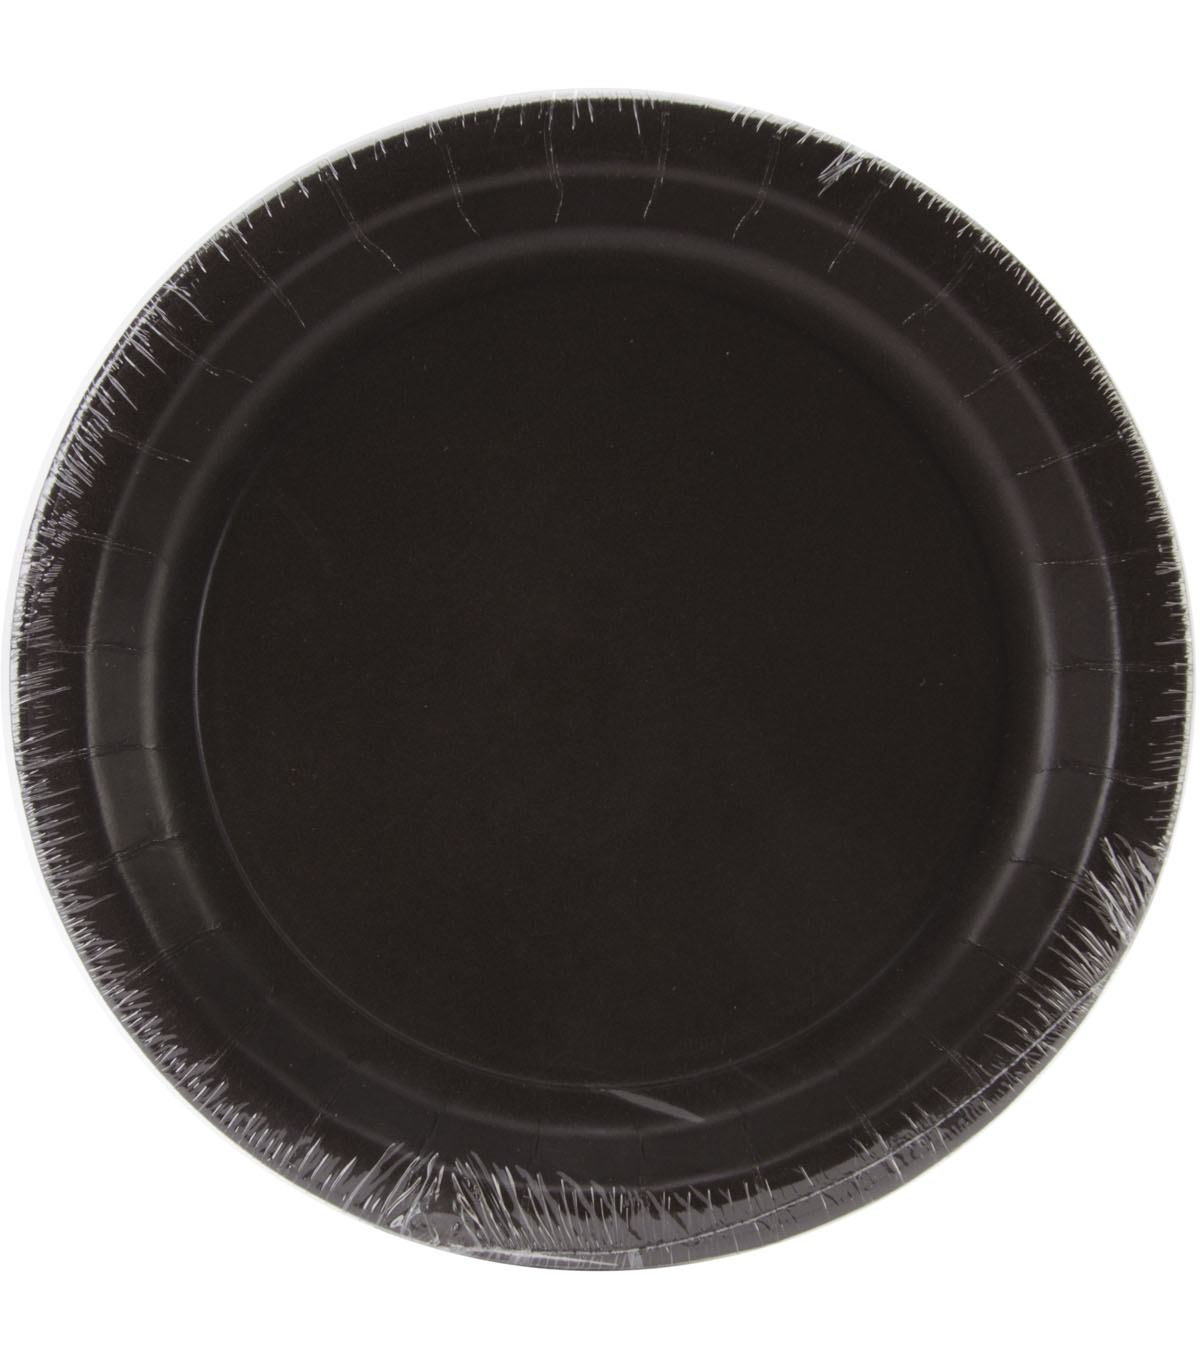 Creative Expressions 24 pk 8.75\u0027\u0027 Dinner Plates-Chocolate Brown